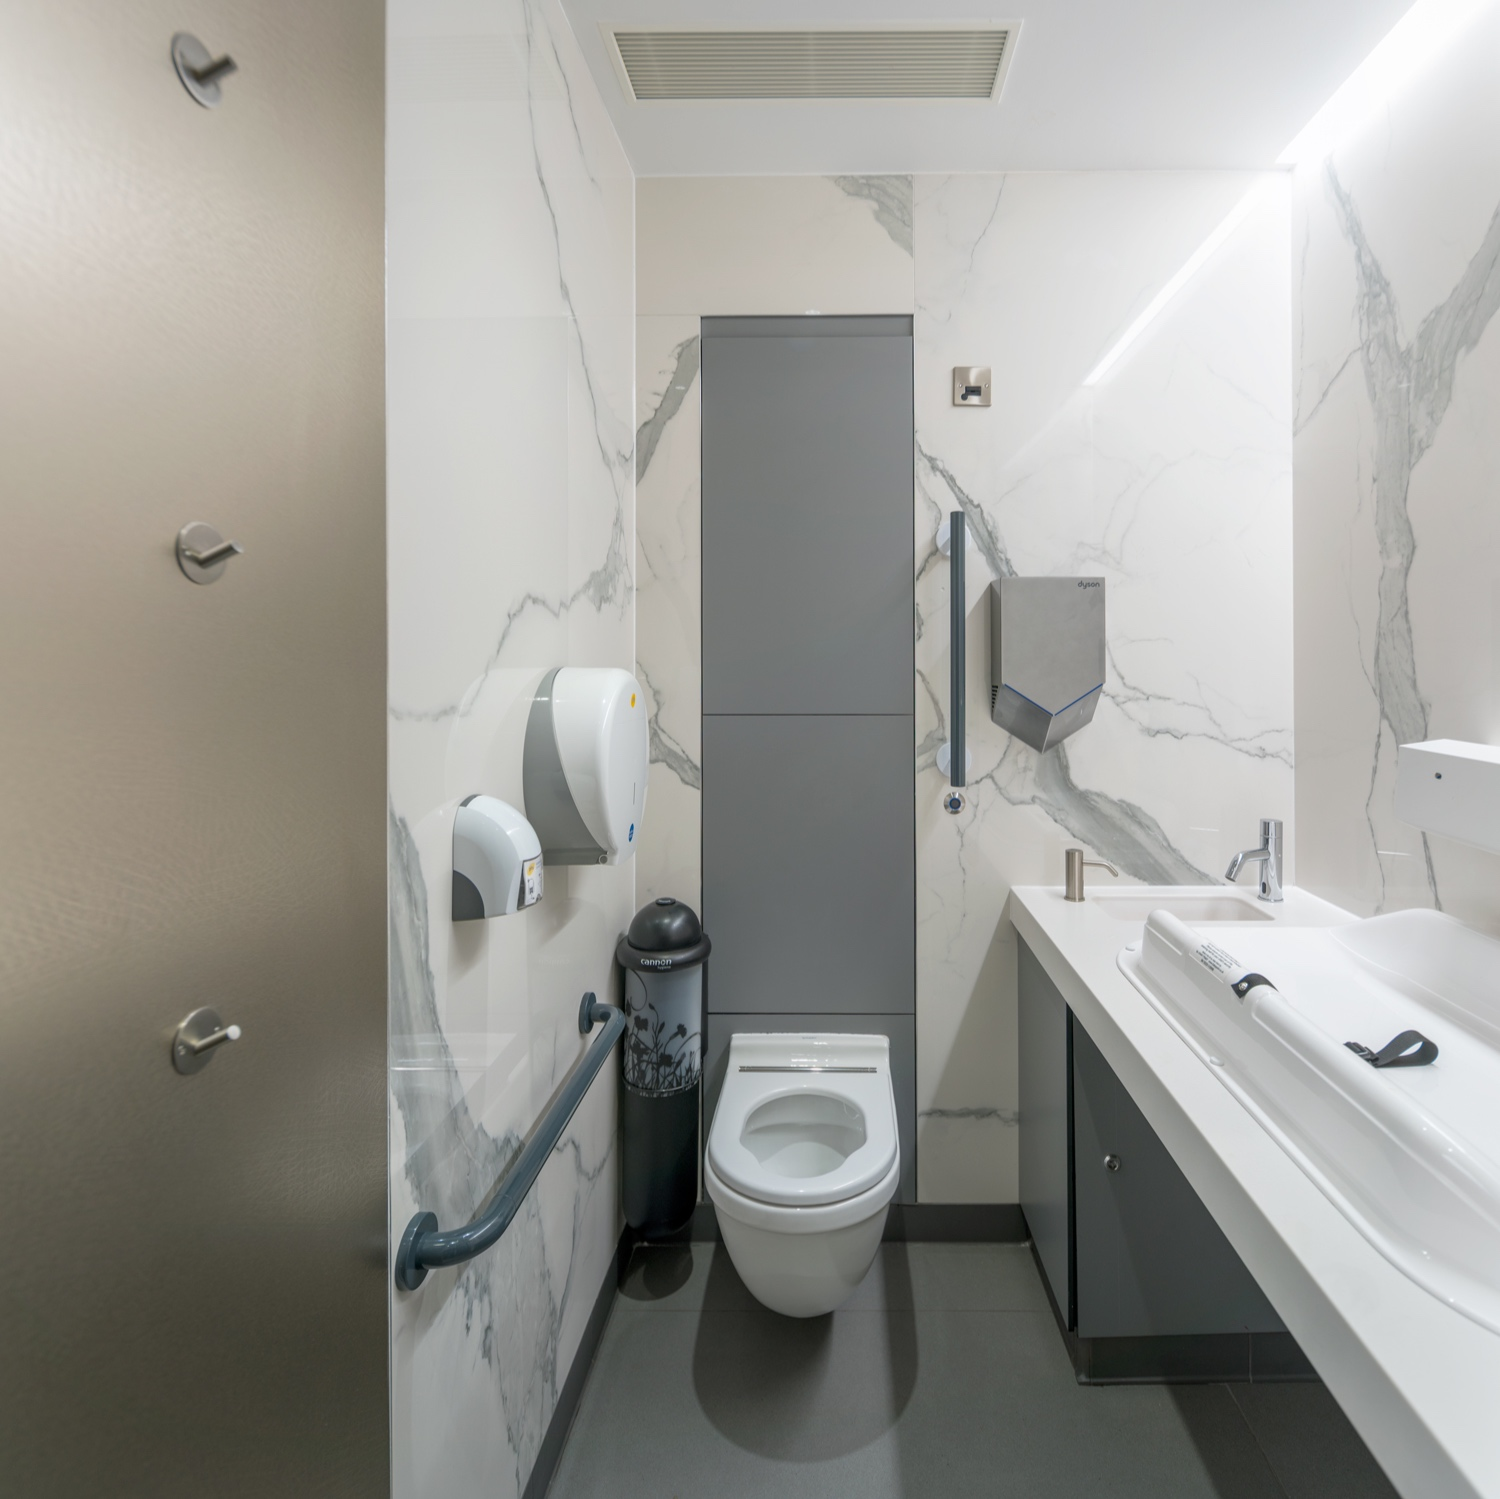 Enlarged 'Ambulant' WC and baby change facilities are provided with both female & male washrooms